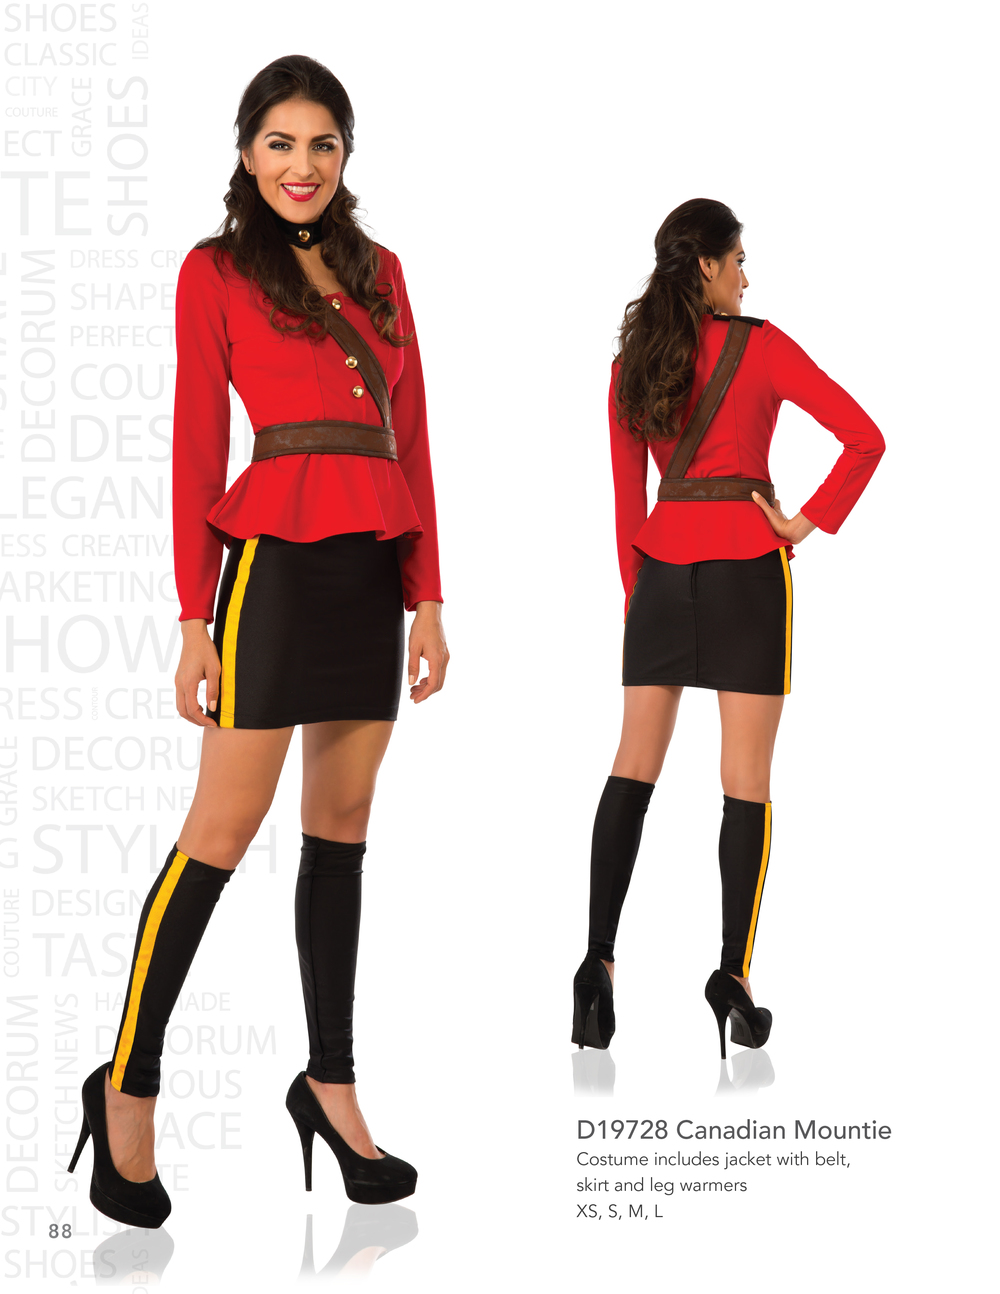 D19728 Canadian Mountie